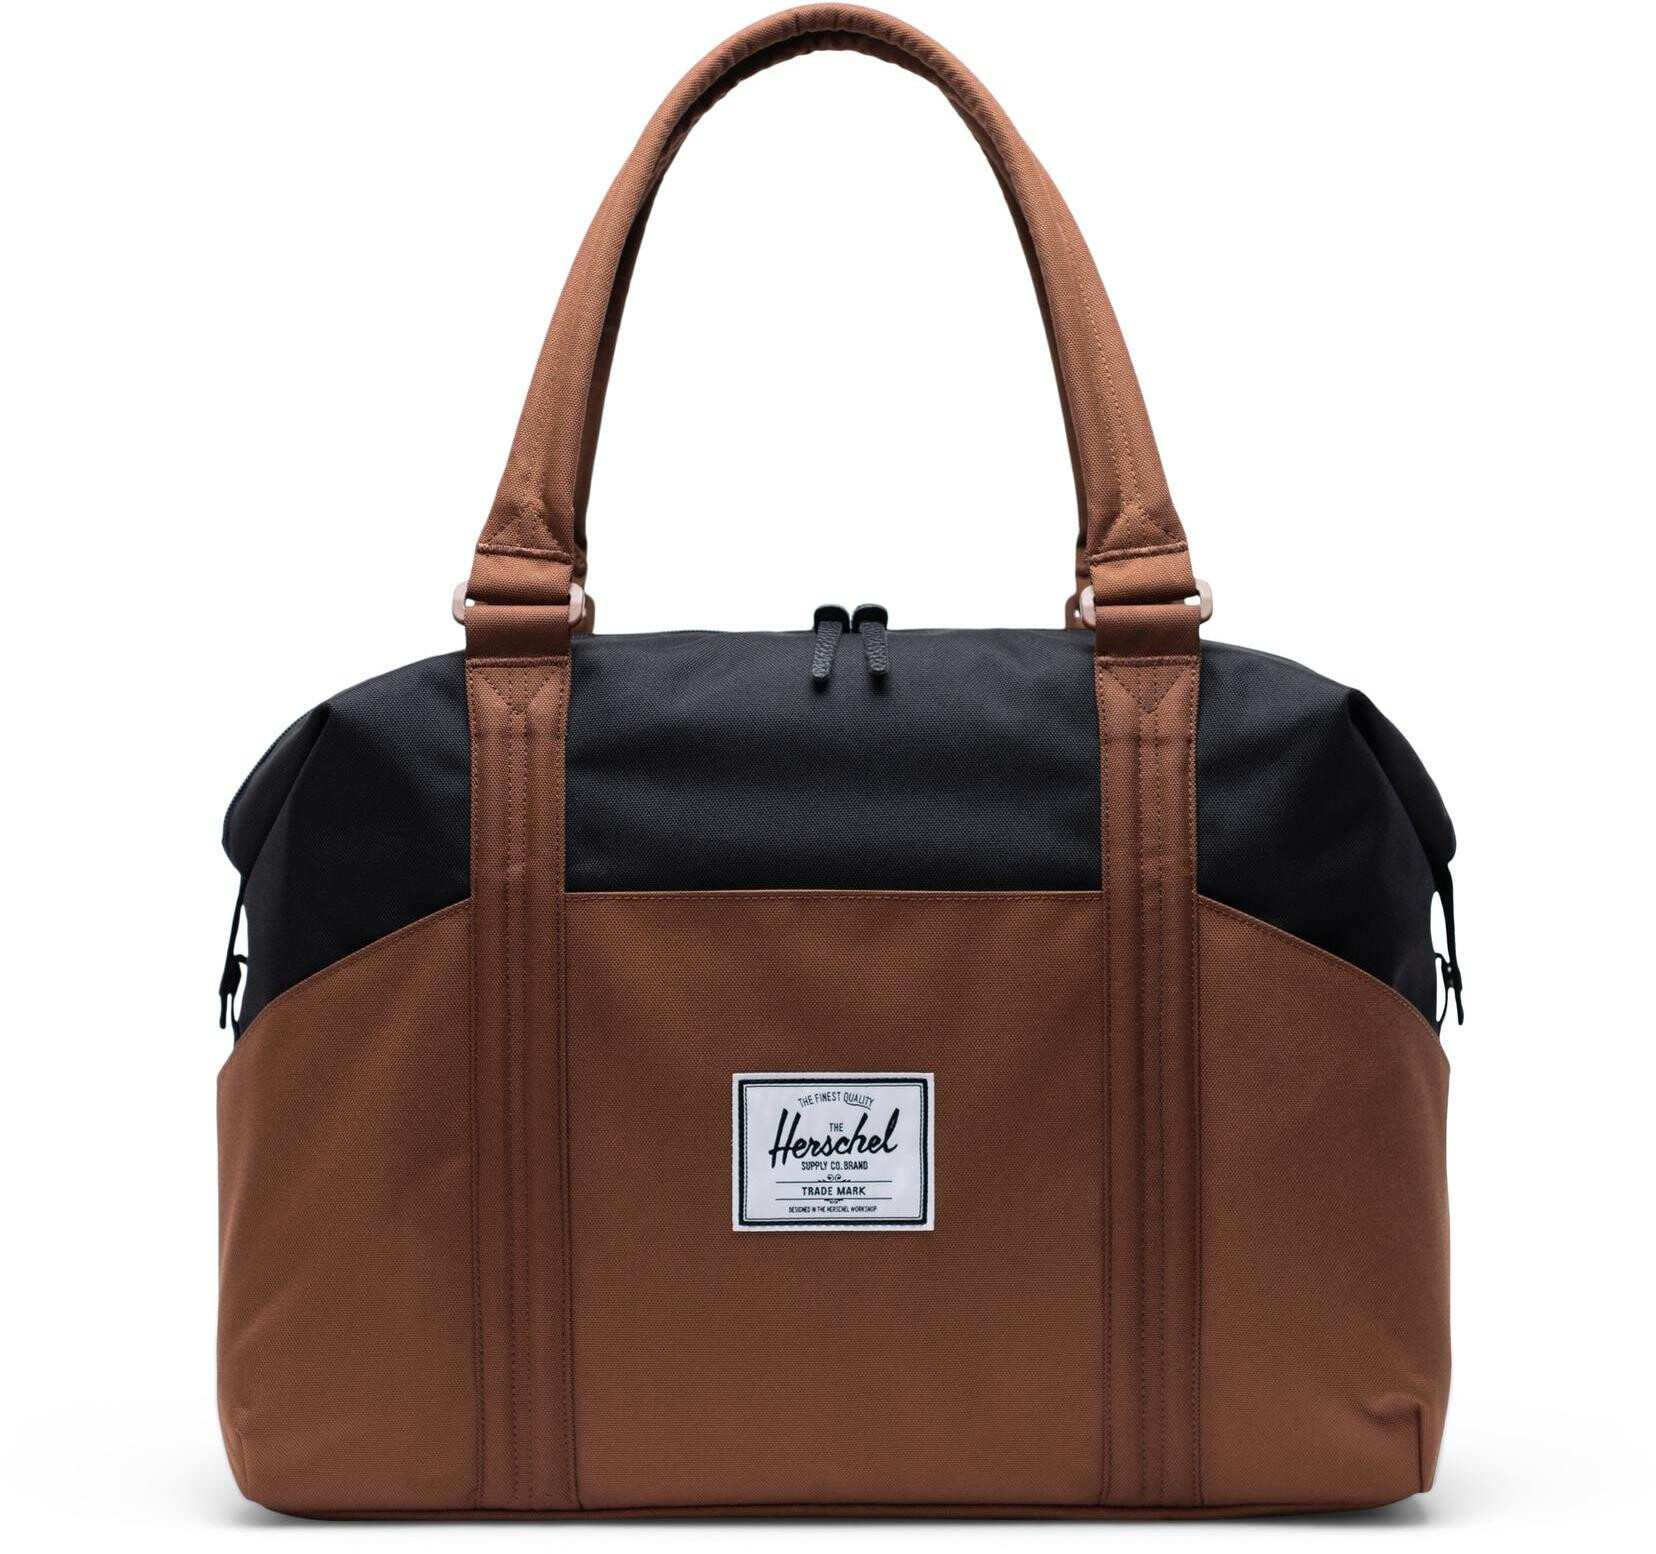 Herschel Strand Tote, saddle brown/black (2019) | Saddles